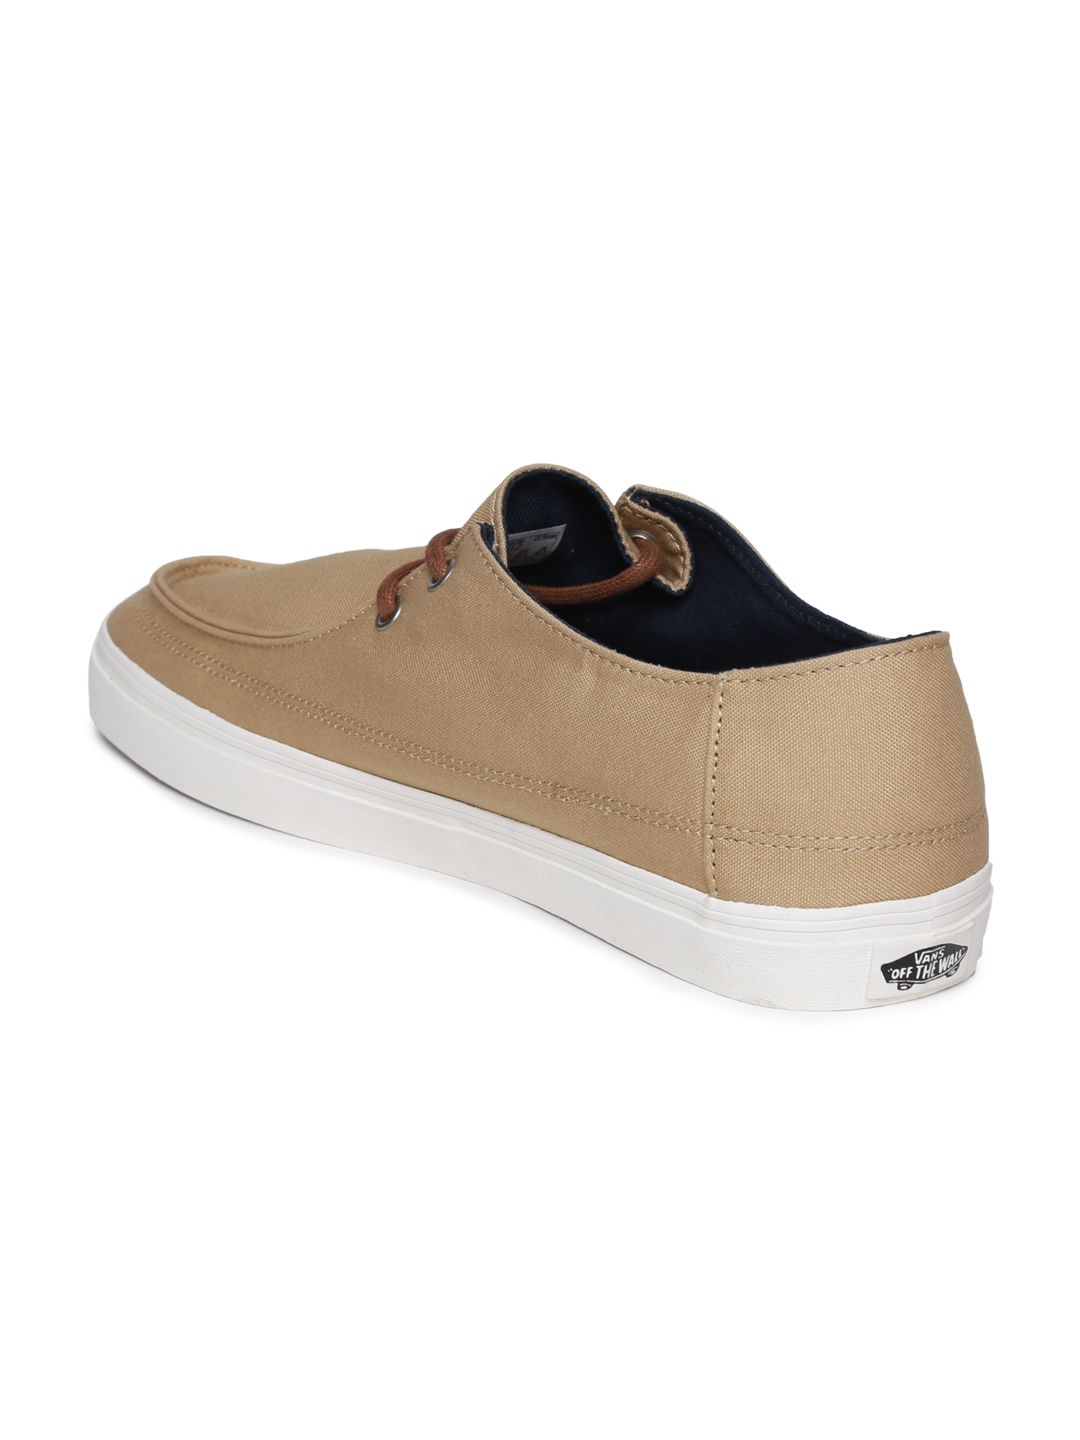 99a2a462a93fc4 Buy Vans Unisex Brown Rata Vulc SF Sneakers - Casual Shoes for ...